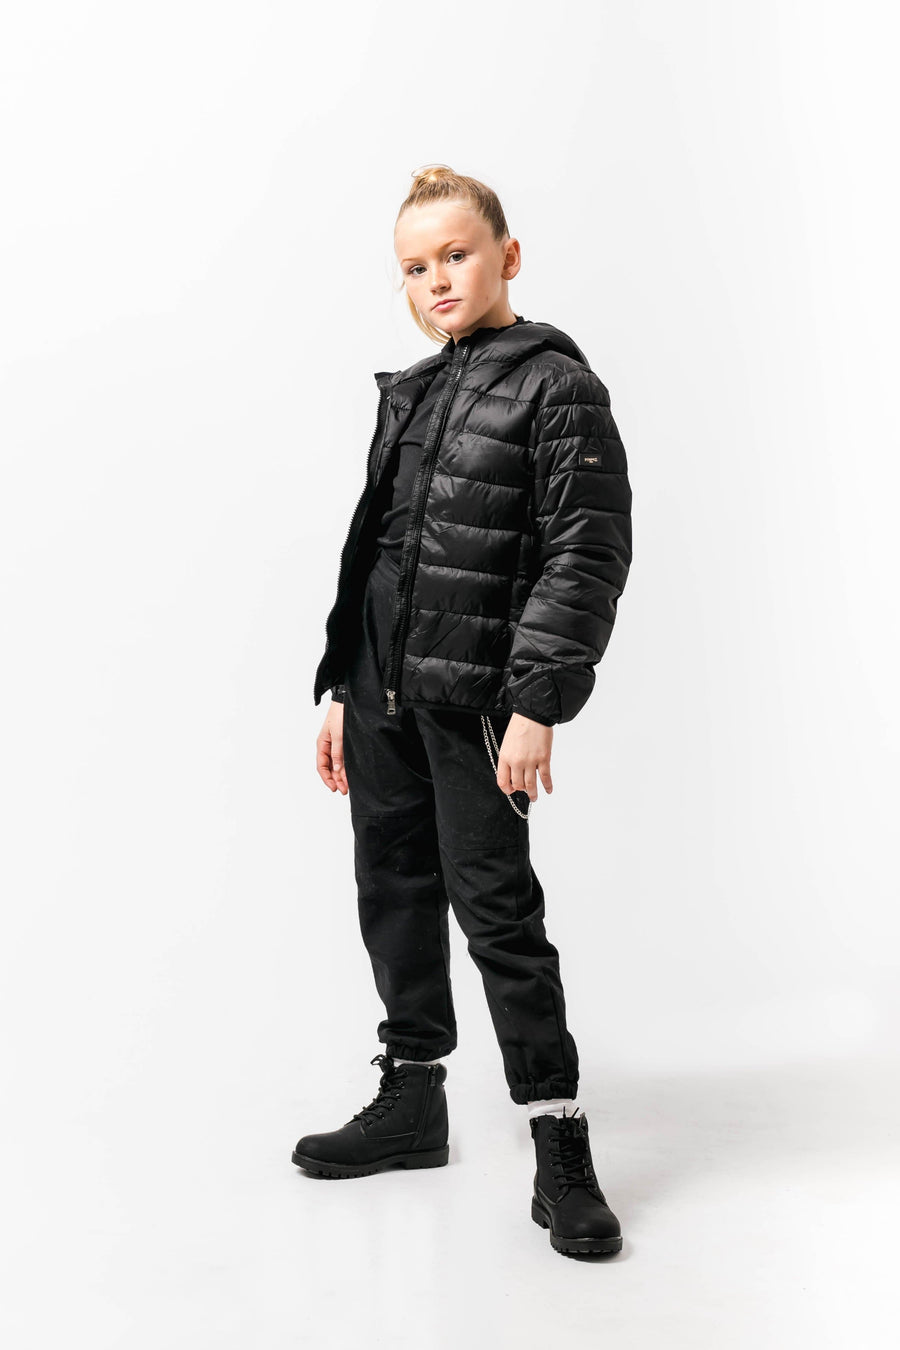 Mia Black Short Fitted Puffa Jacket From Little Attitude